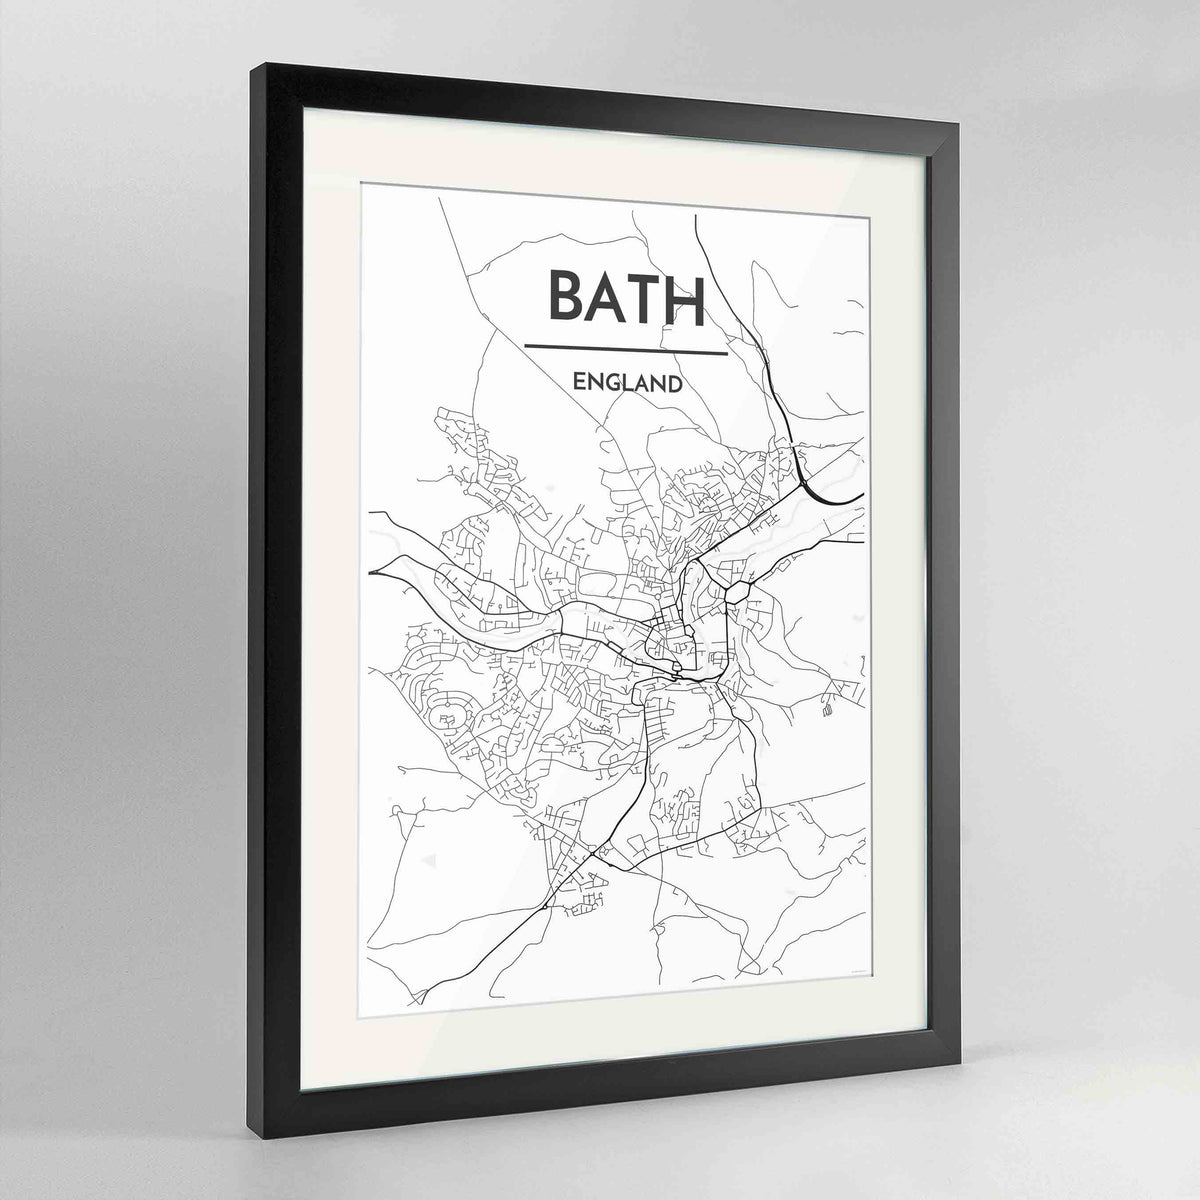 "Framed Bath Map Art Print 24x36"" Contemporary Black frame Point Two Design Group"